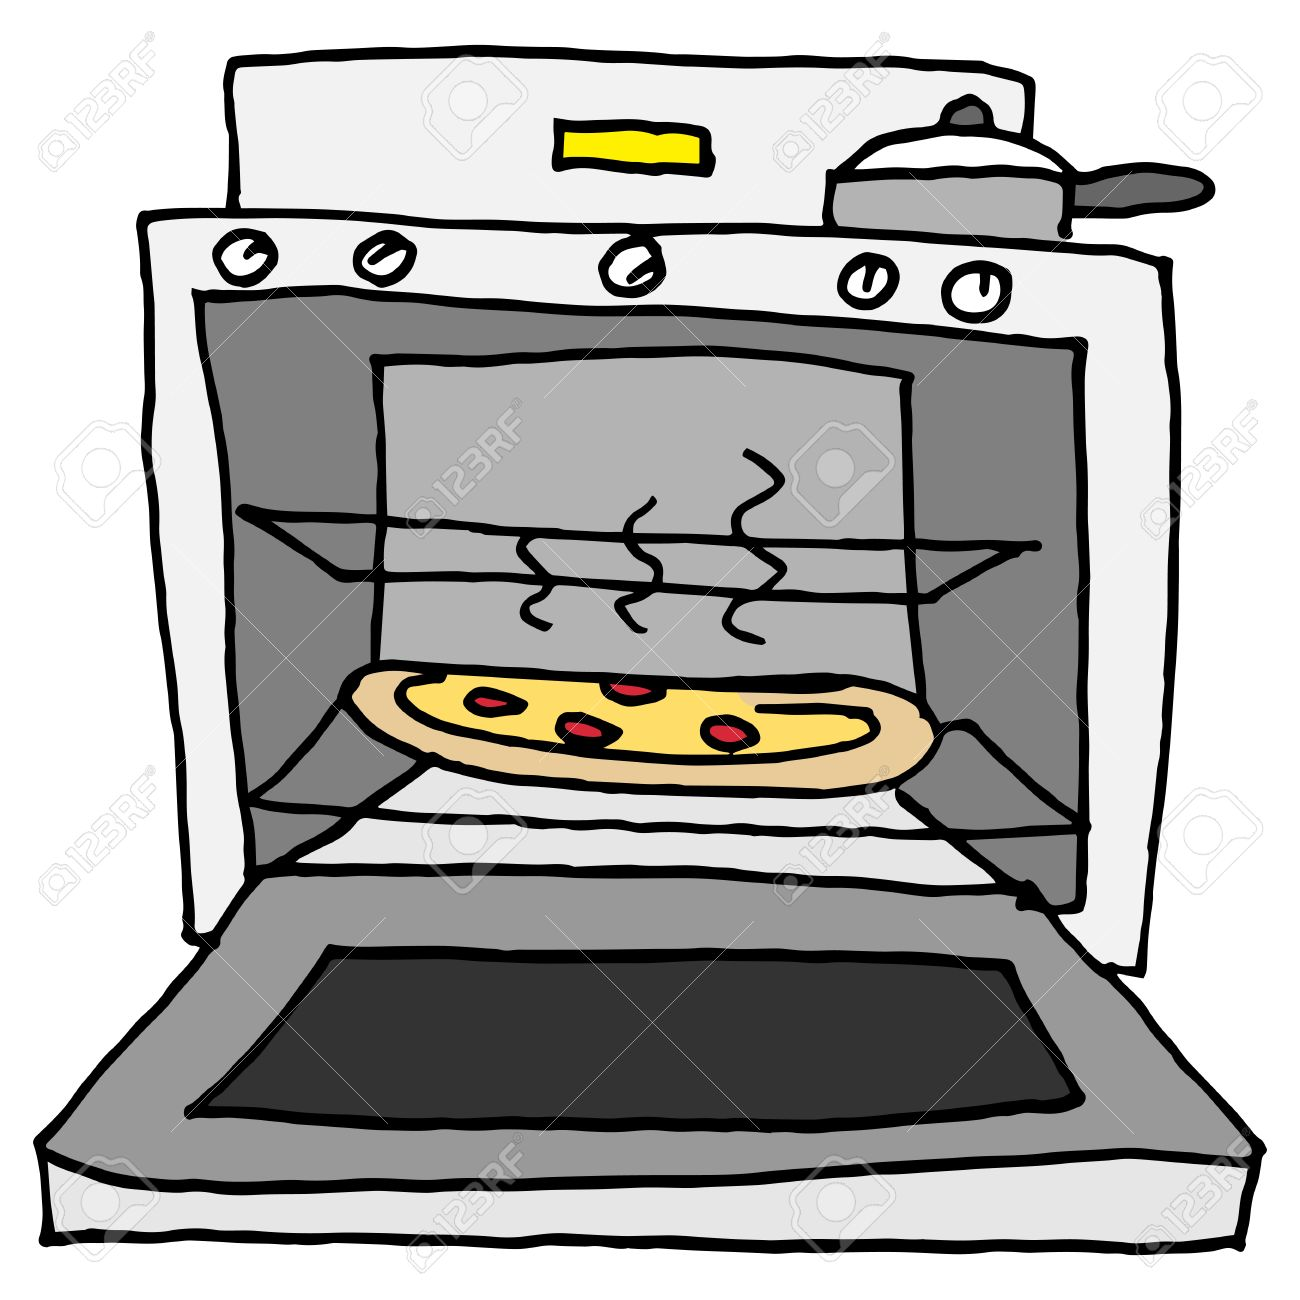 Oven Clipart Images.